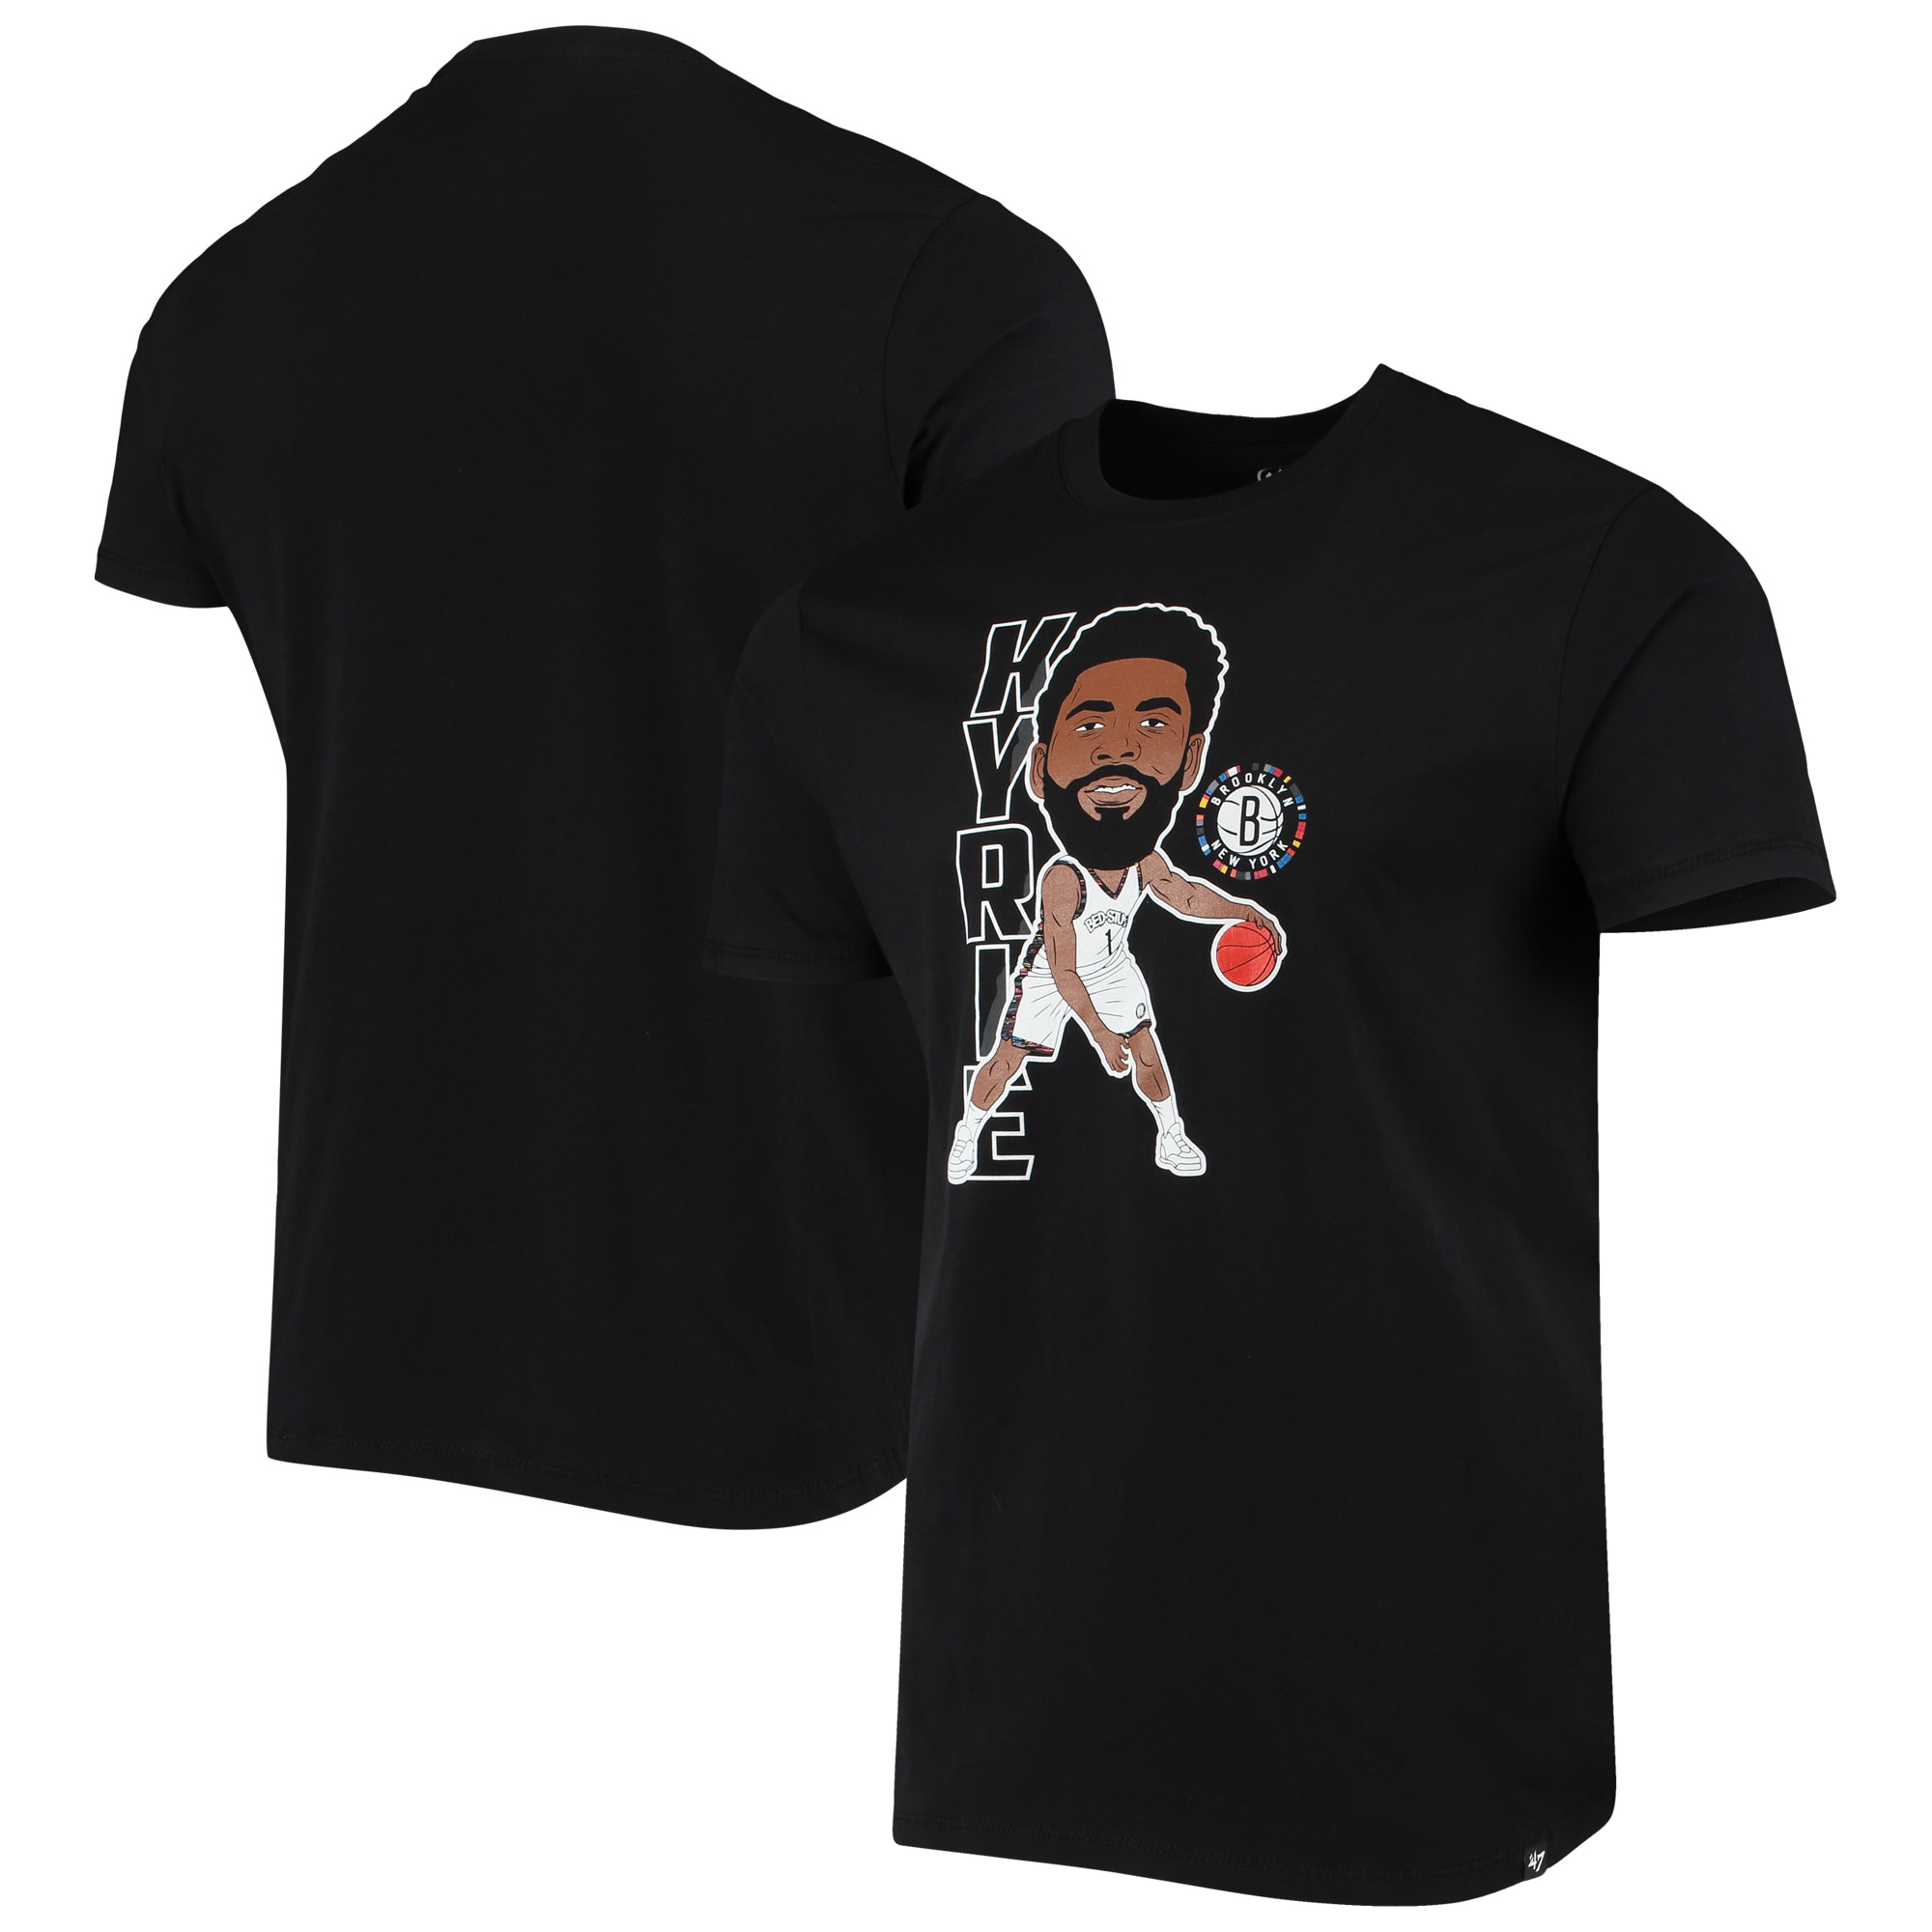 Kyrie Irving Brooklyn Nets '47 Bobblehead Player T-Shirt - Black